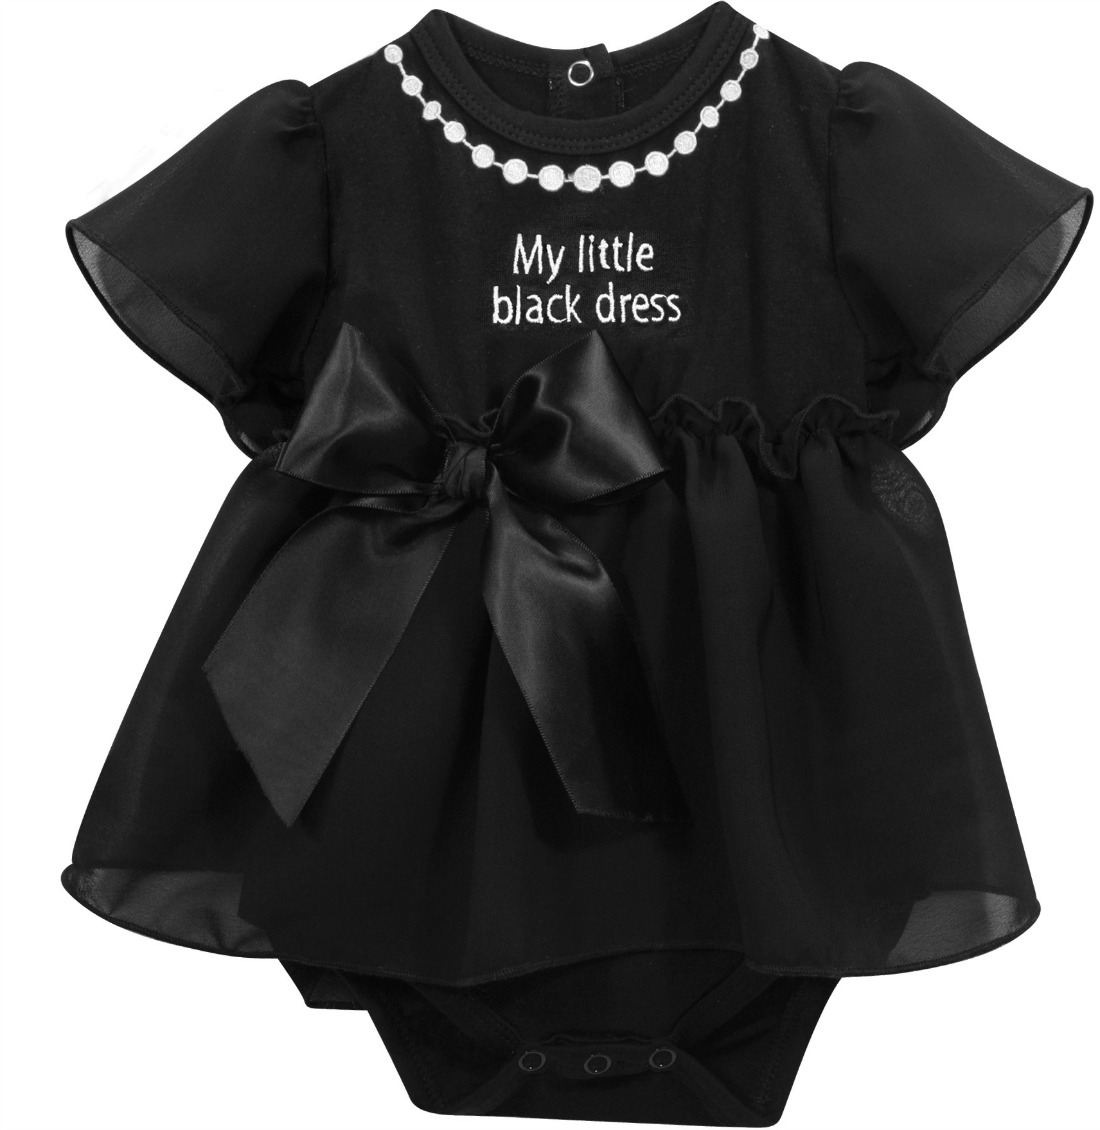 498c75246b70 Baby Girls Little Black Dress Snapdress - SOLD OUT